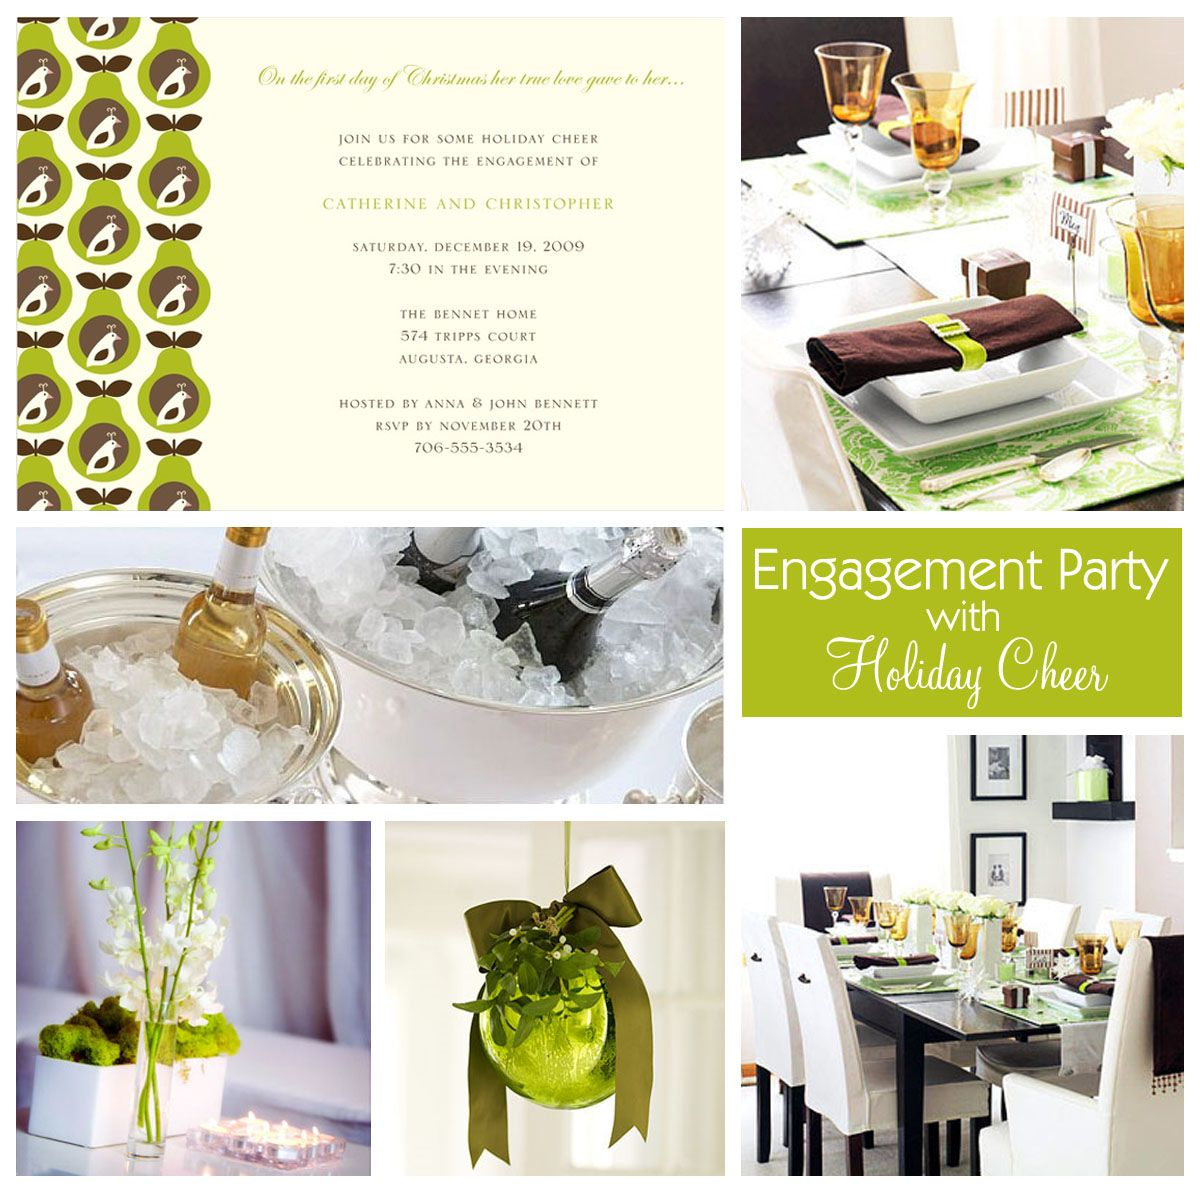 Pin by Adrienne Shindledecker on Pears | Pinterest | Engagement ...